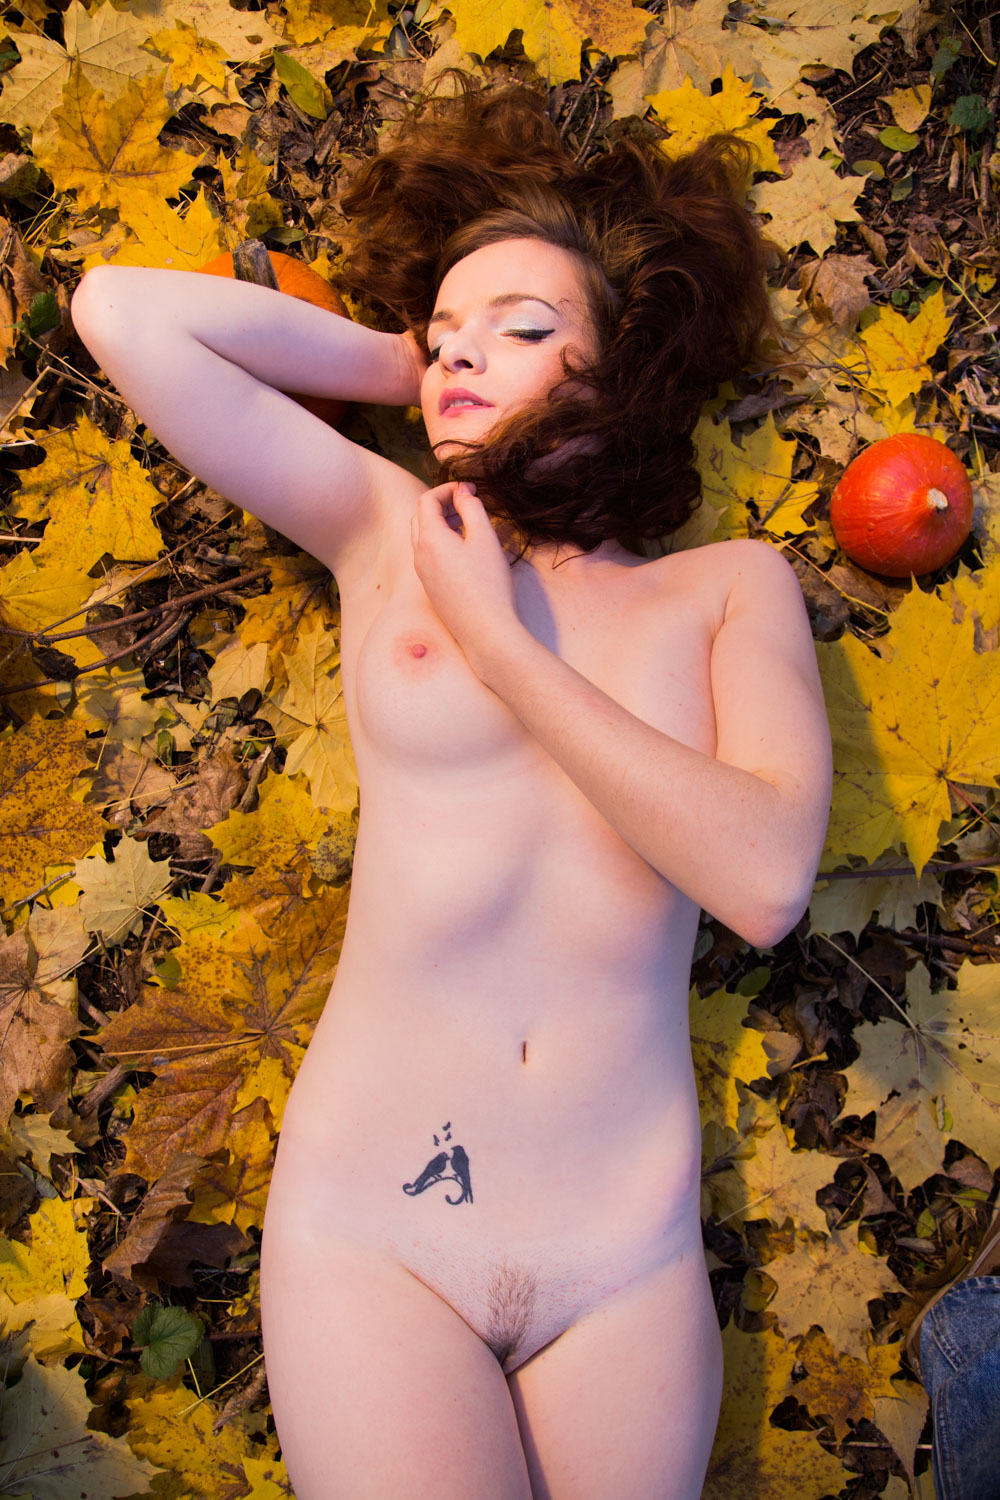 malwina-wlodarczyk-halloween-2015-on-leaves-16